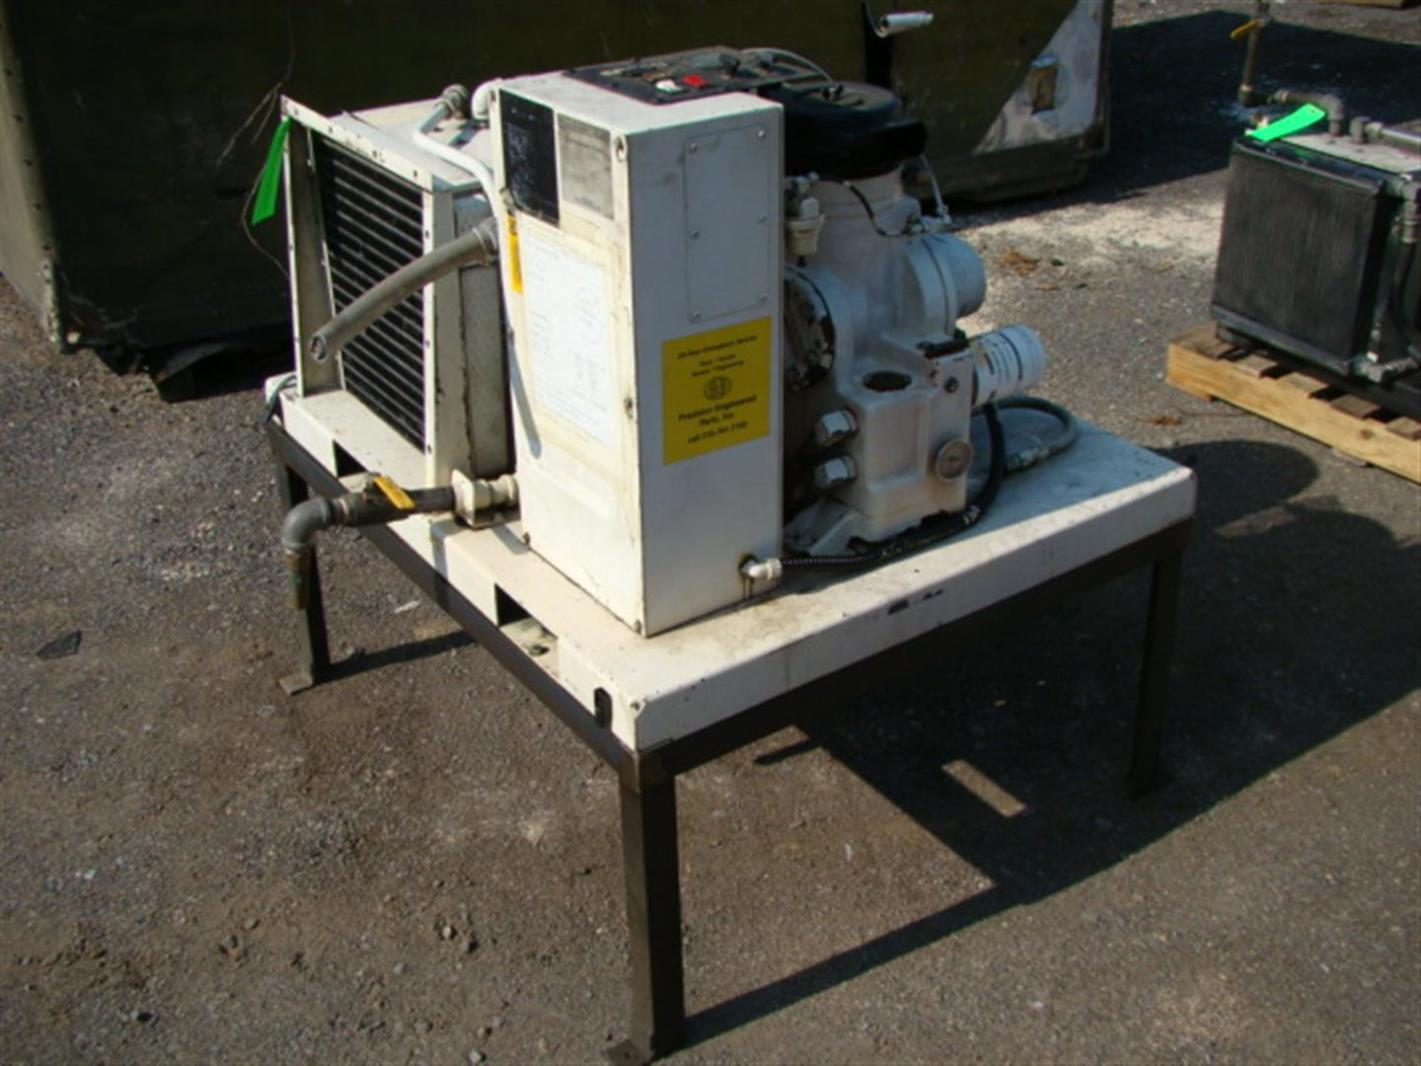 Details about Ingersoll Rand Rotary Screw 94cfm Air Compressor SSR-EP25U